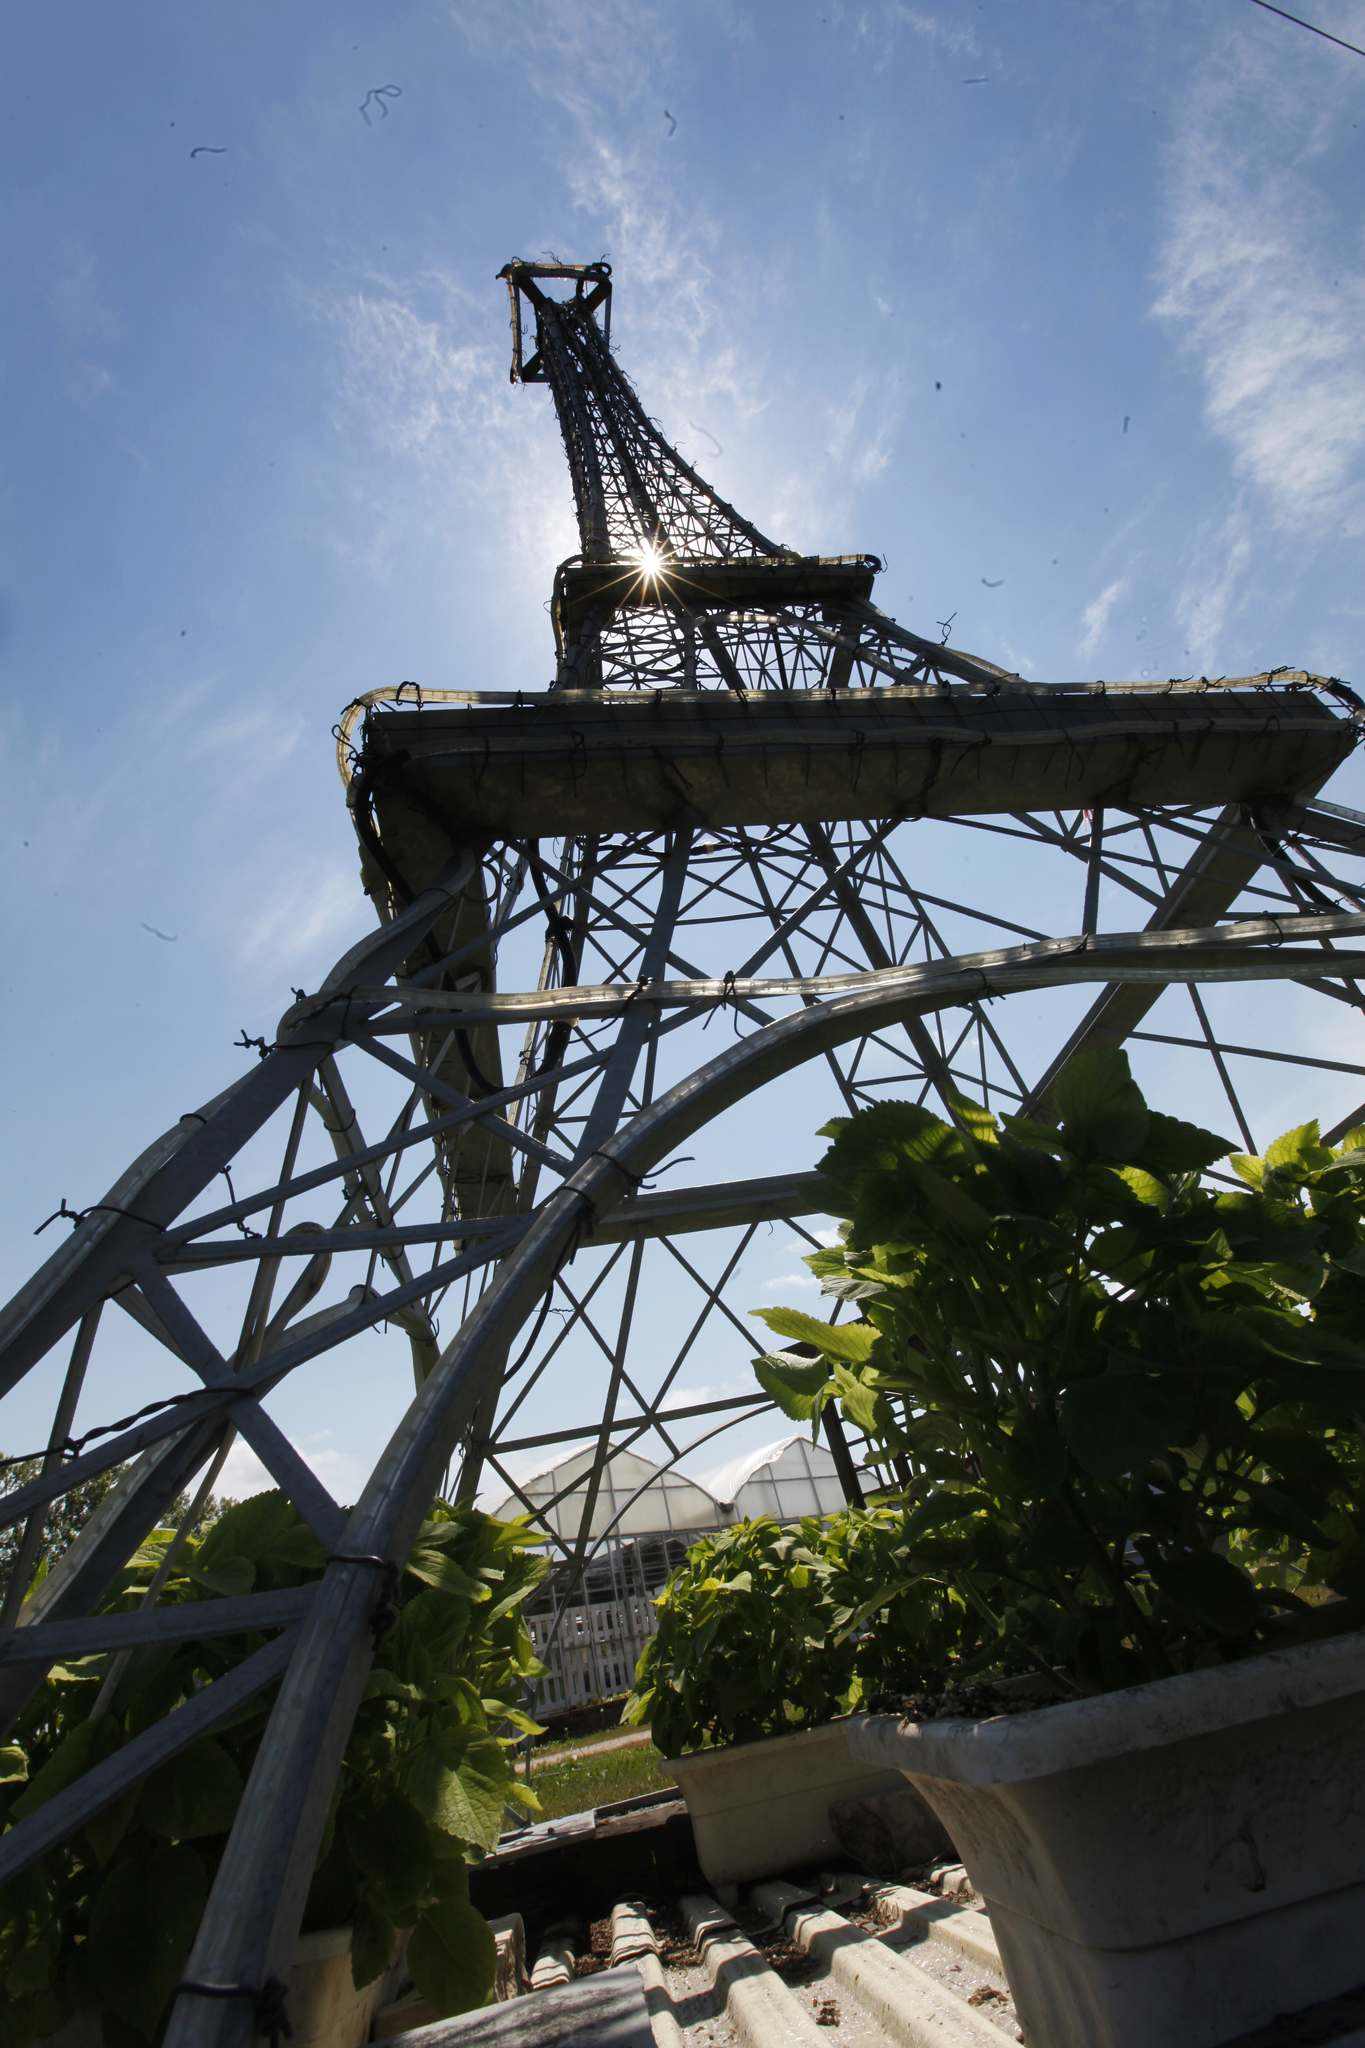 The Scale Model Version Of Eiffel Tower Was Built By St Vital Welding